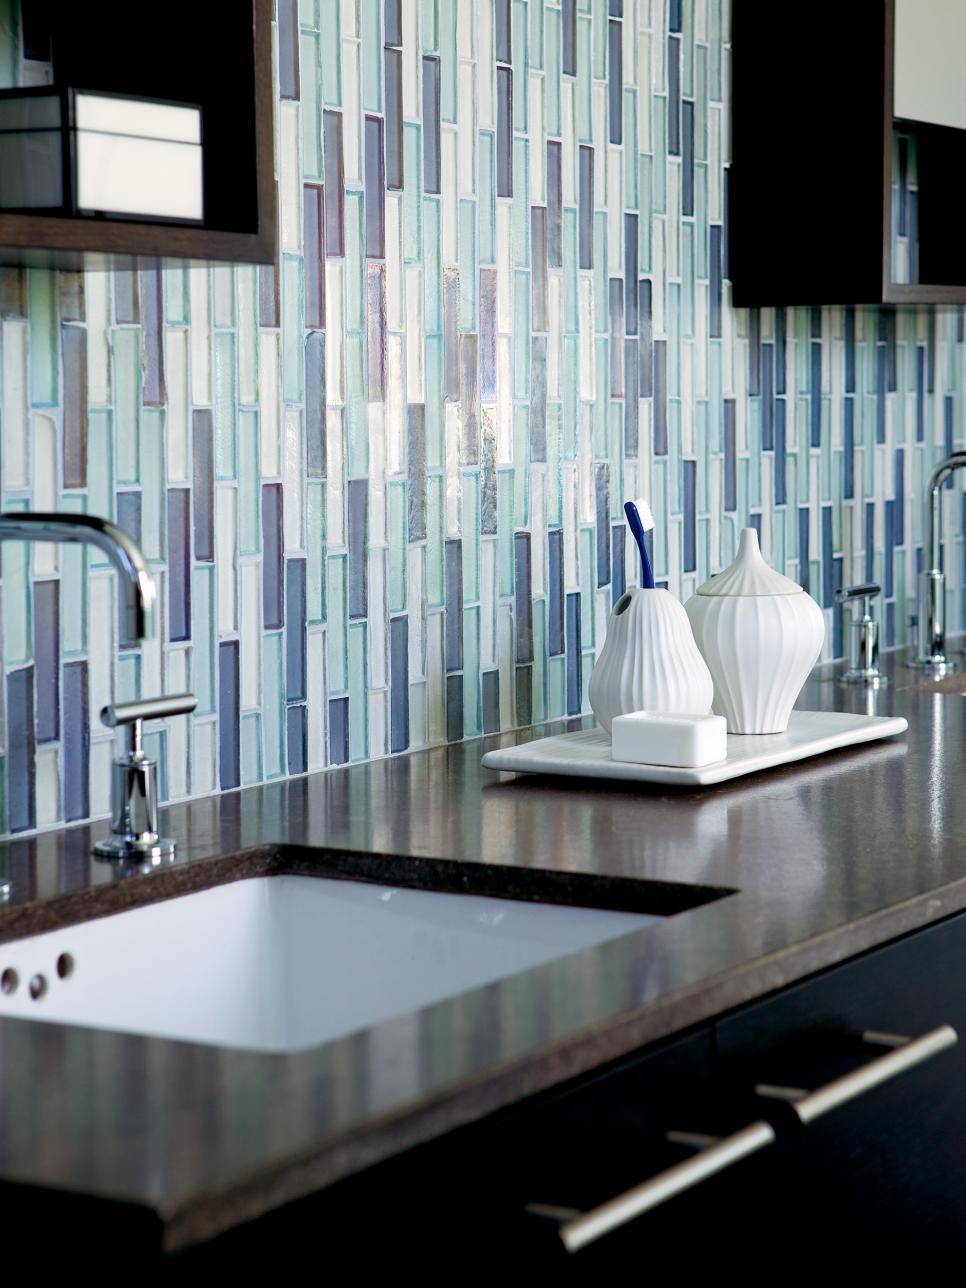 Bathroom designs pictures with tiles - Bathroom Designs Pictures With Tiles 29